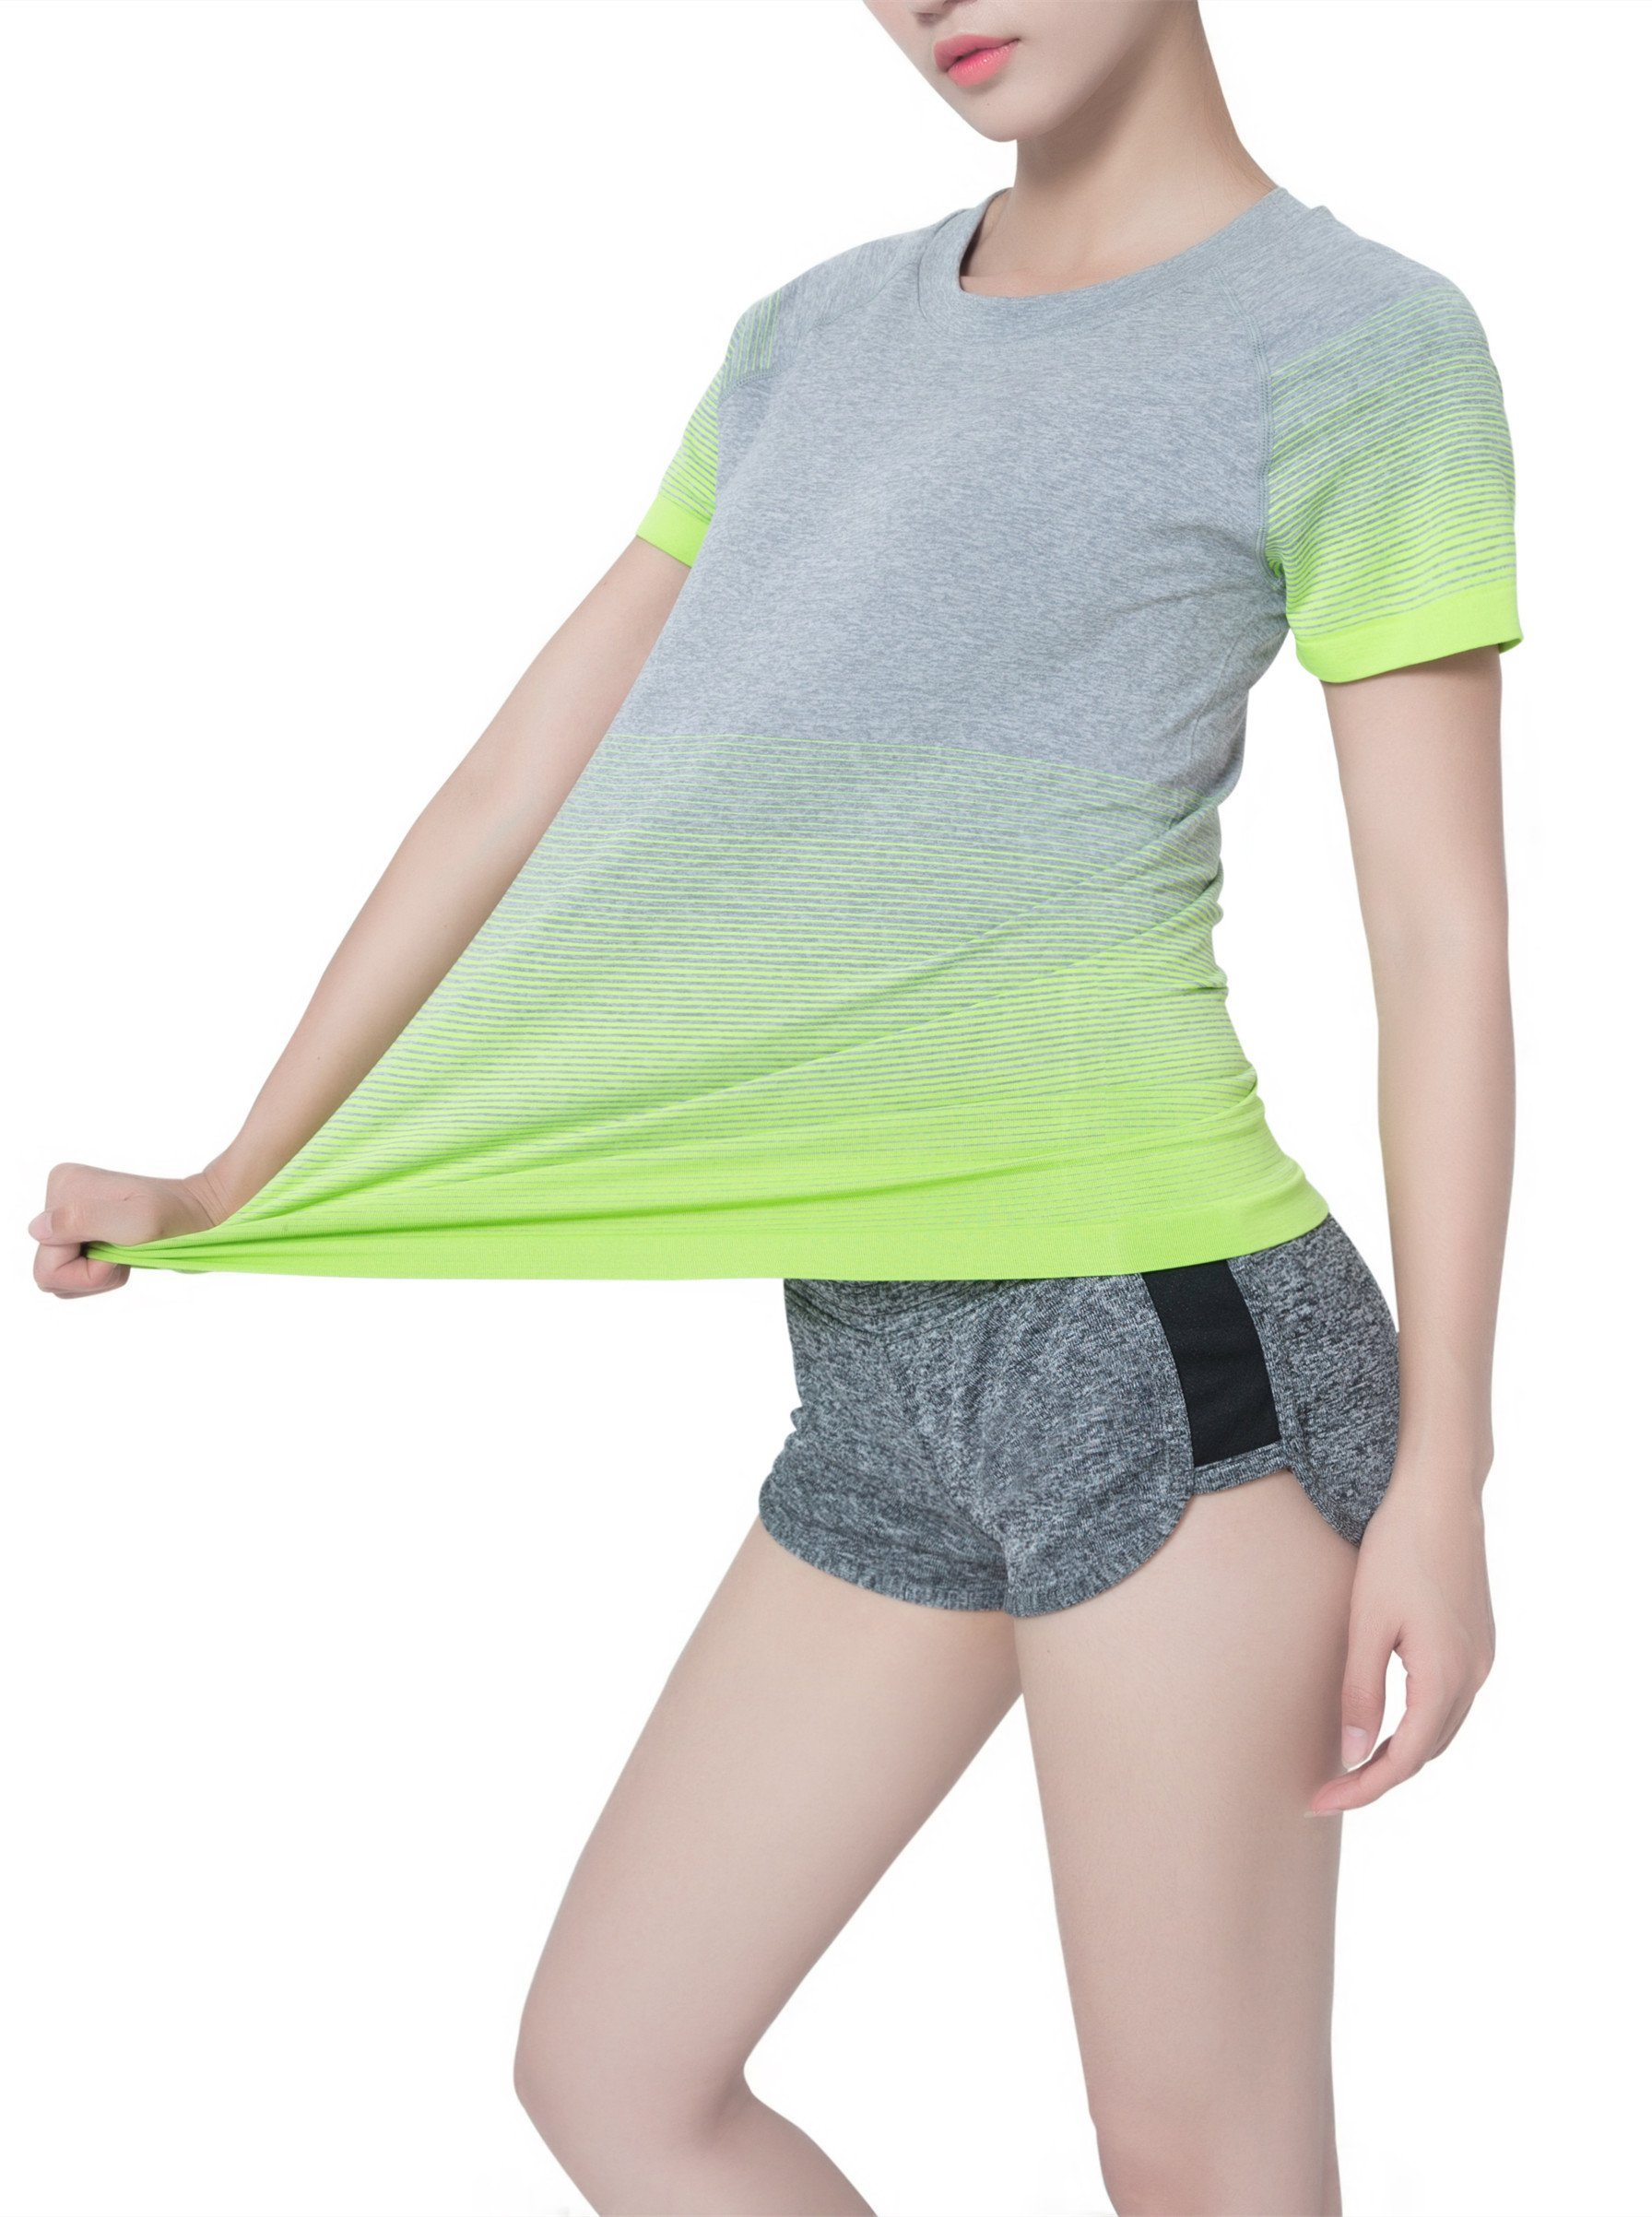 SLENDSHAPER Women\'s Moisture Wicking Sports Short Sleeve Tee Yoga Breathable Ultra Comfortable Running Fitness T-Shirts(xlarge, green and grey)